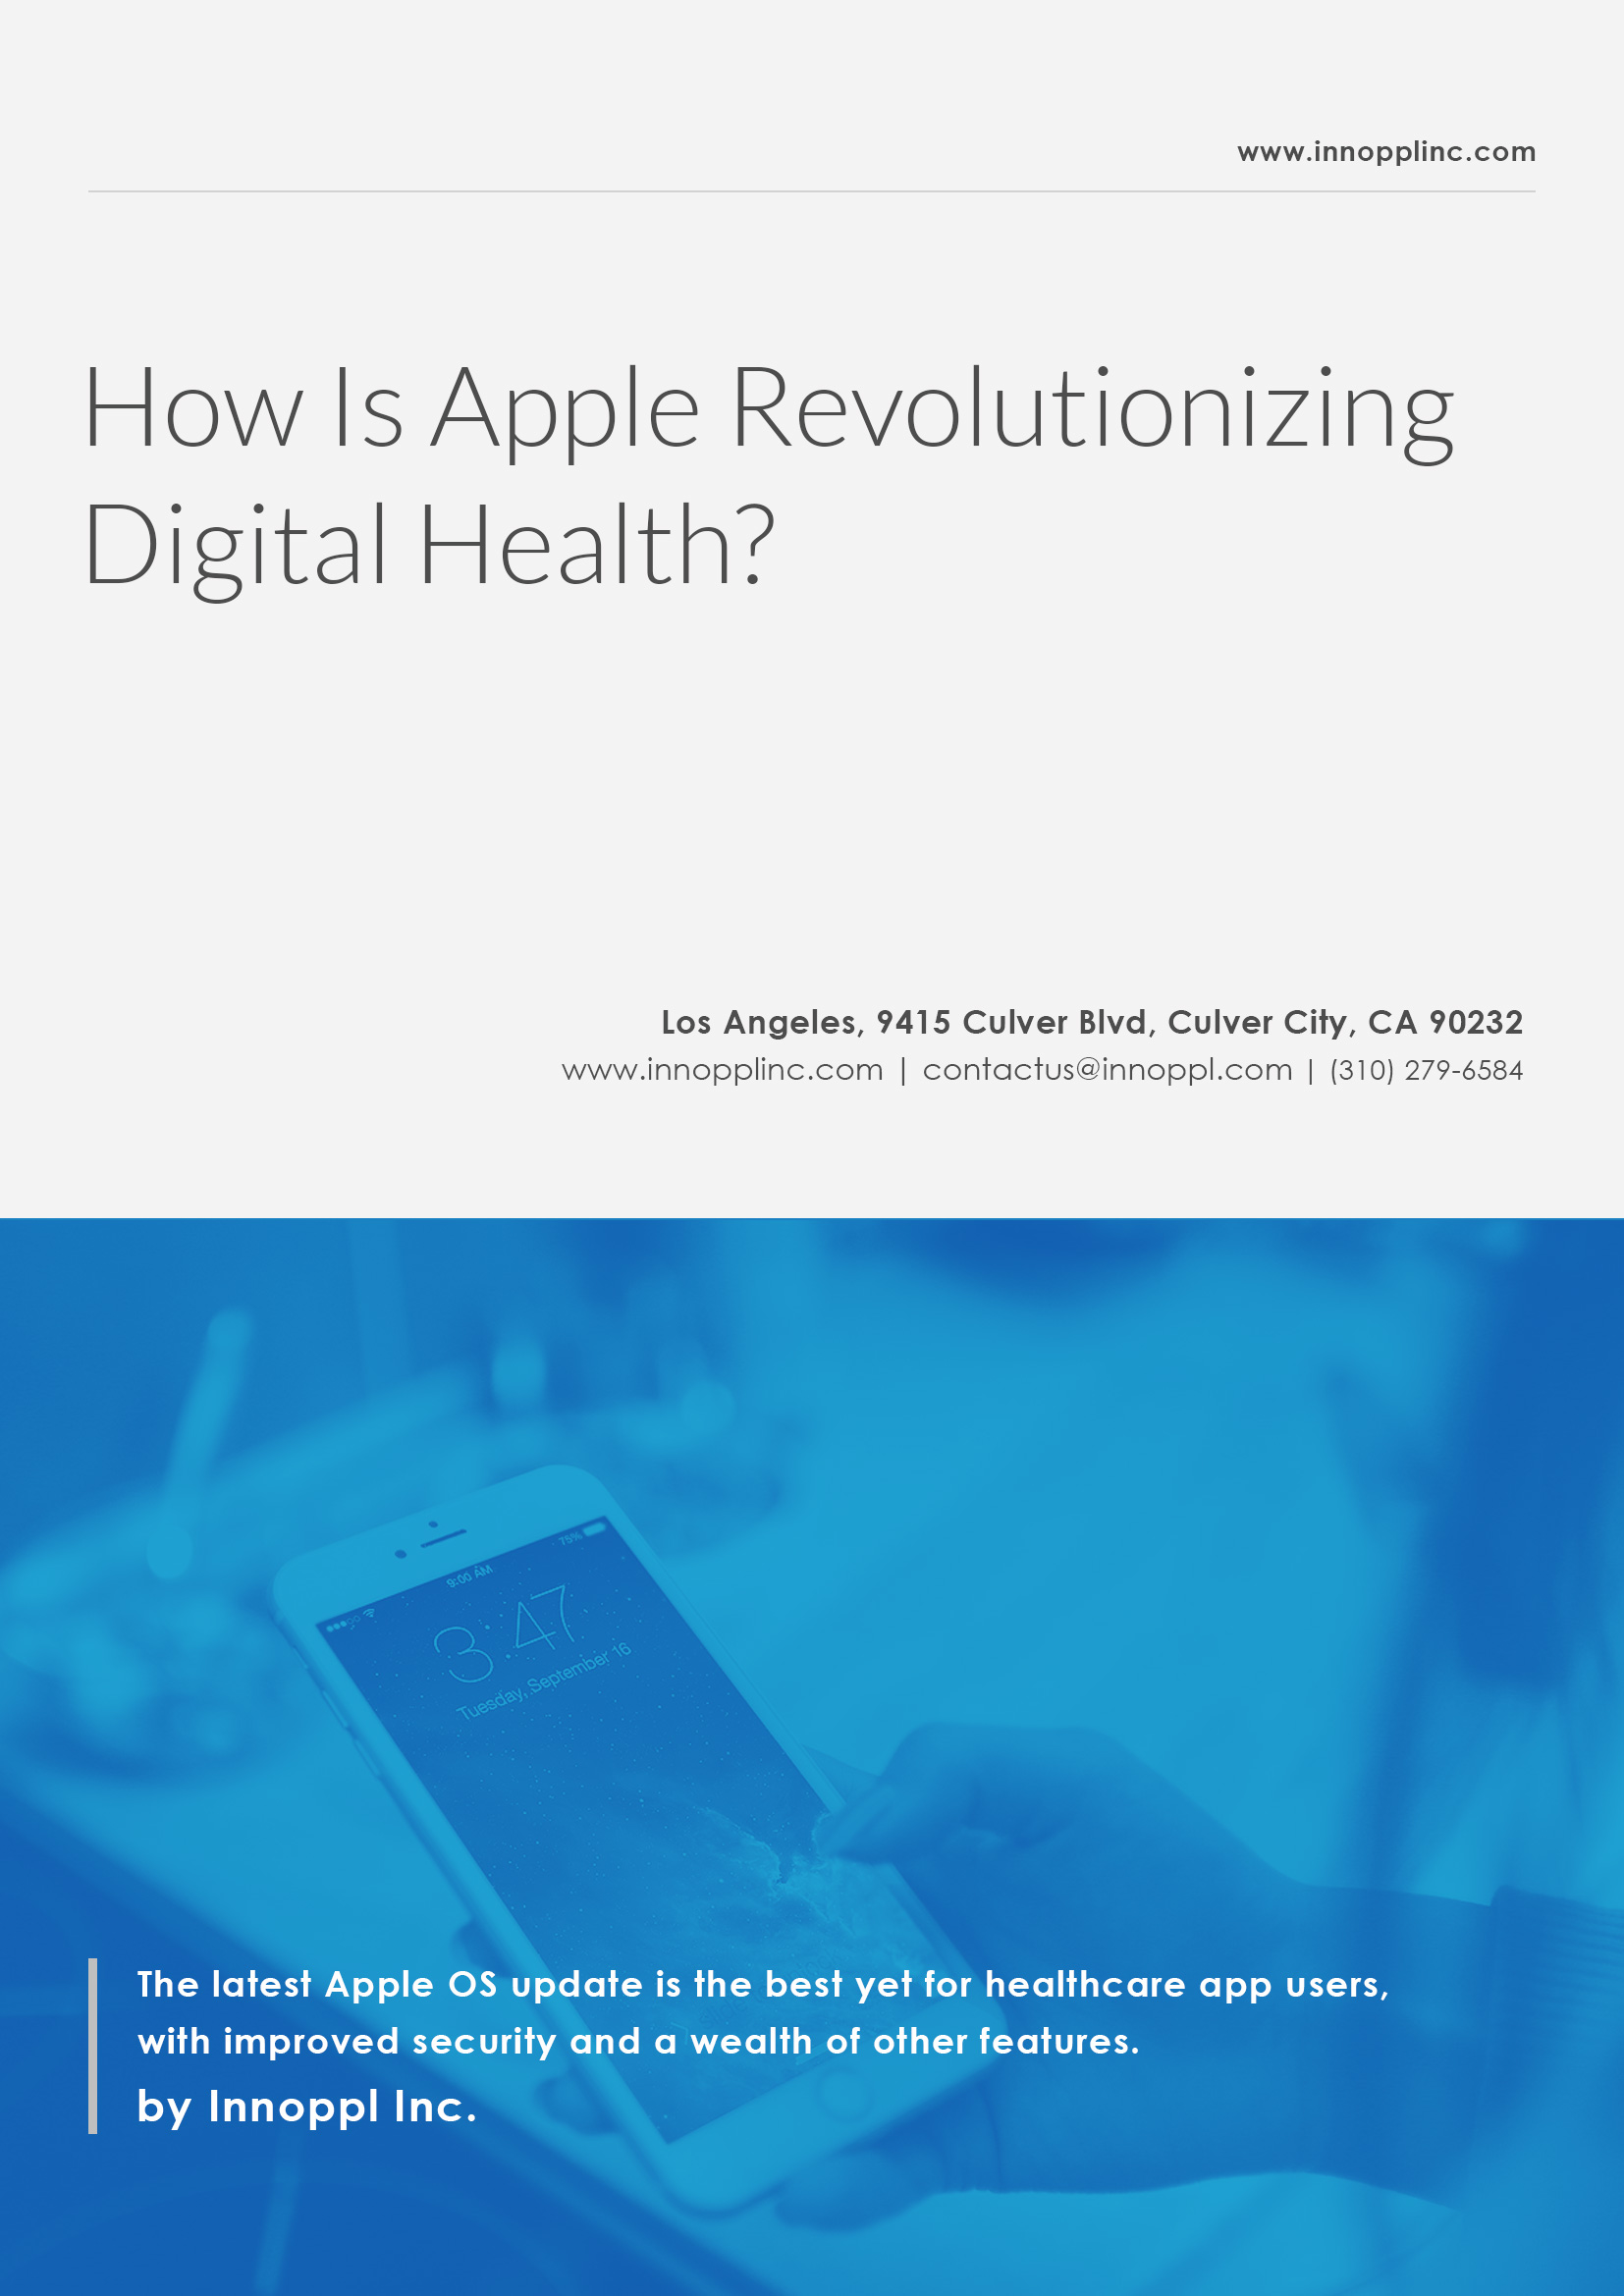 How Is Apple Revolutionizing Digital Health